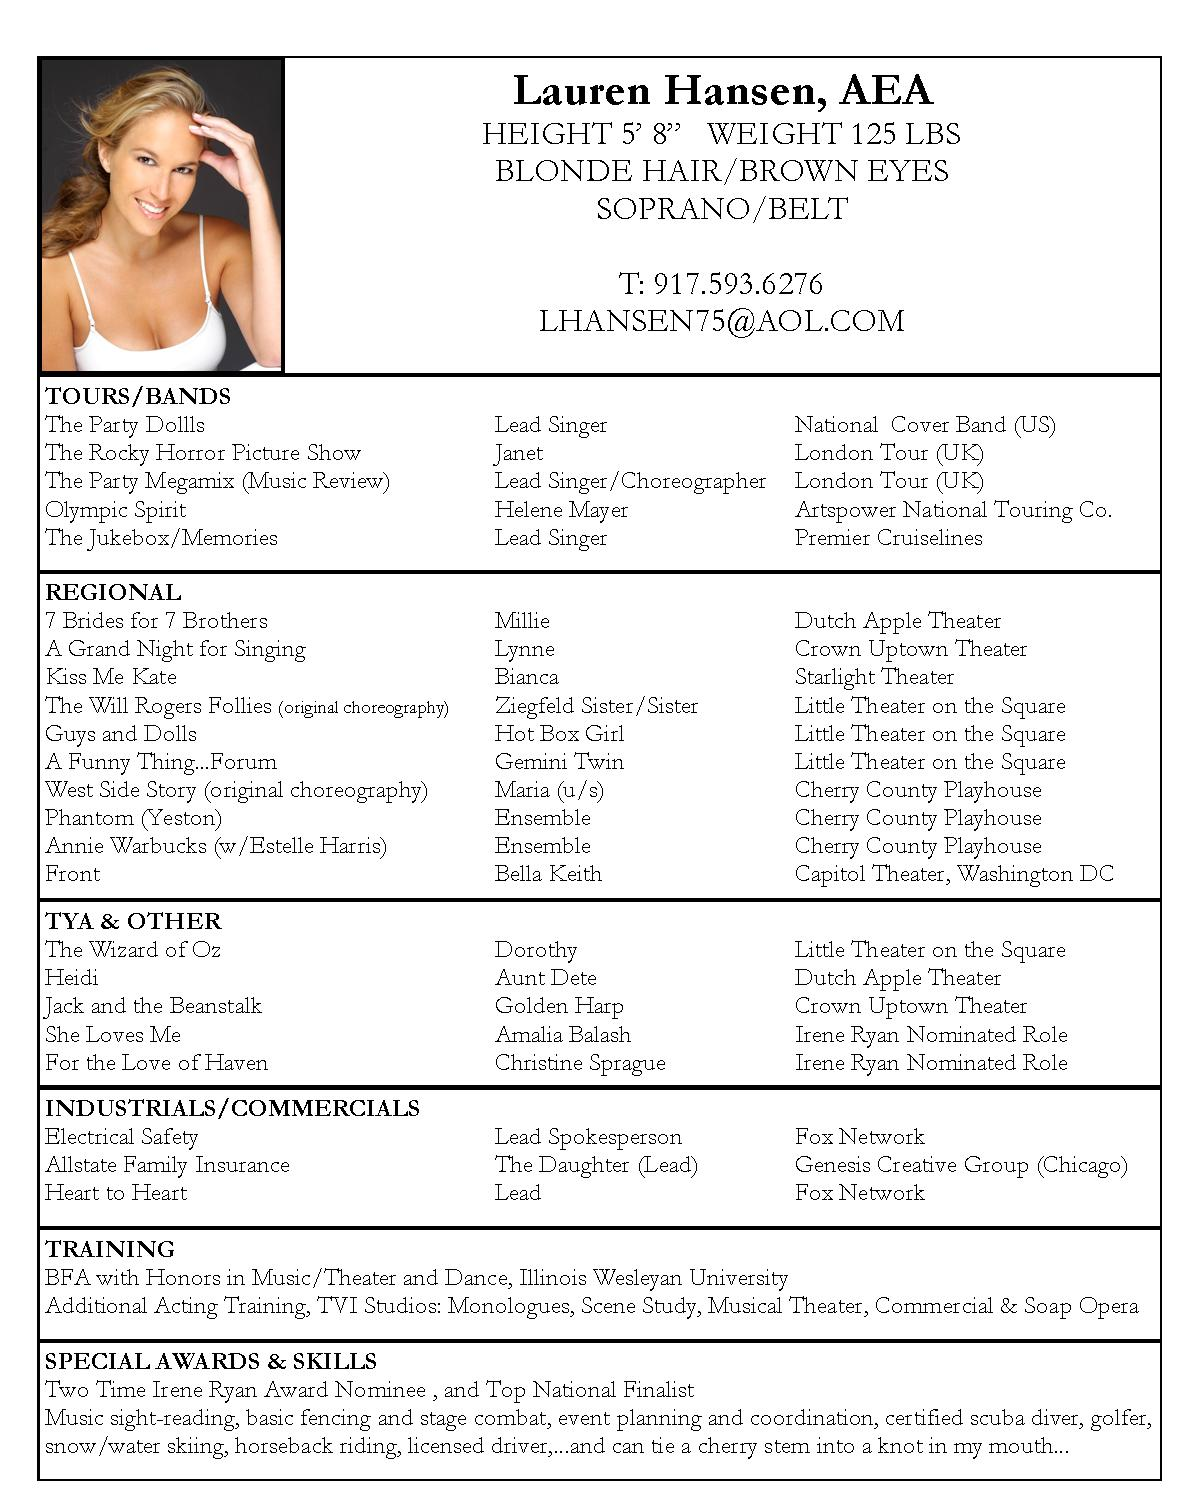 Opposenewapstandardsus  Marvellous Resume For Actors Resume For Acting Actors Acting Resume Template  With Luxury Acting Cv  Beginner Acting Resume Example For Inexperienced  With Comely Oracle Resume Also Shipping Receiving Resume In Addition Free Resume Websites And How To Present Resume As Well As Good Words To Use In Resume Additionally Tailor Your Resume From Kelseymarieco With Opposenewapstandardsus  Luxury Resume For Actors Resume For Acting Actors Acting Resume Template  With Comely Acting Cv  Beginner Acting Resume Example For Inexperienced  And Marvellous Oracle Resume Also Shipping Receiving Resume In Addition Free Resume Websites From Kelseymarieco